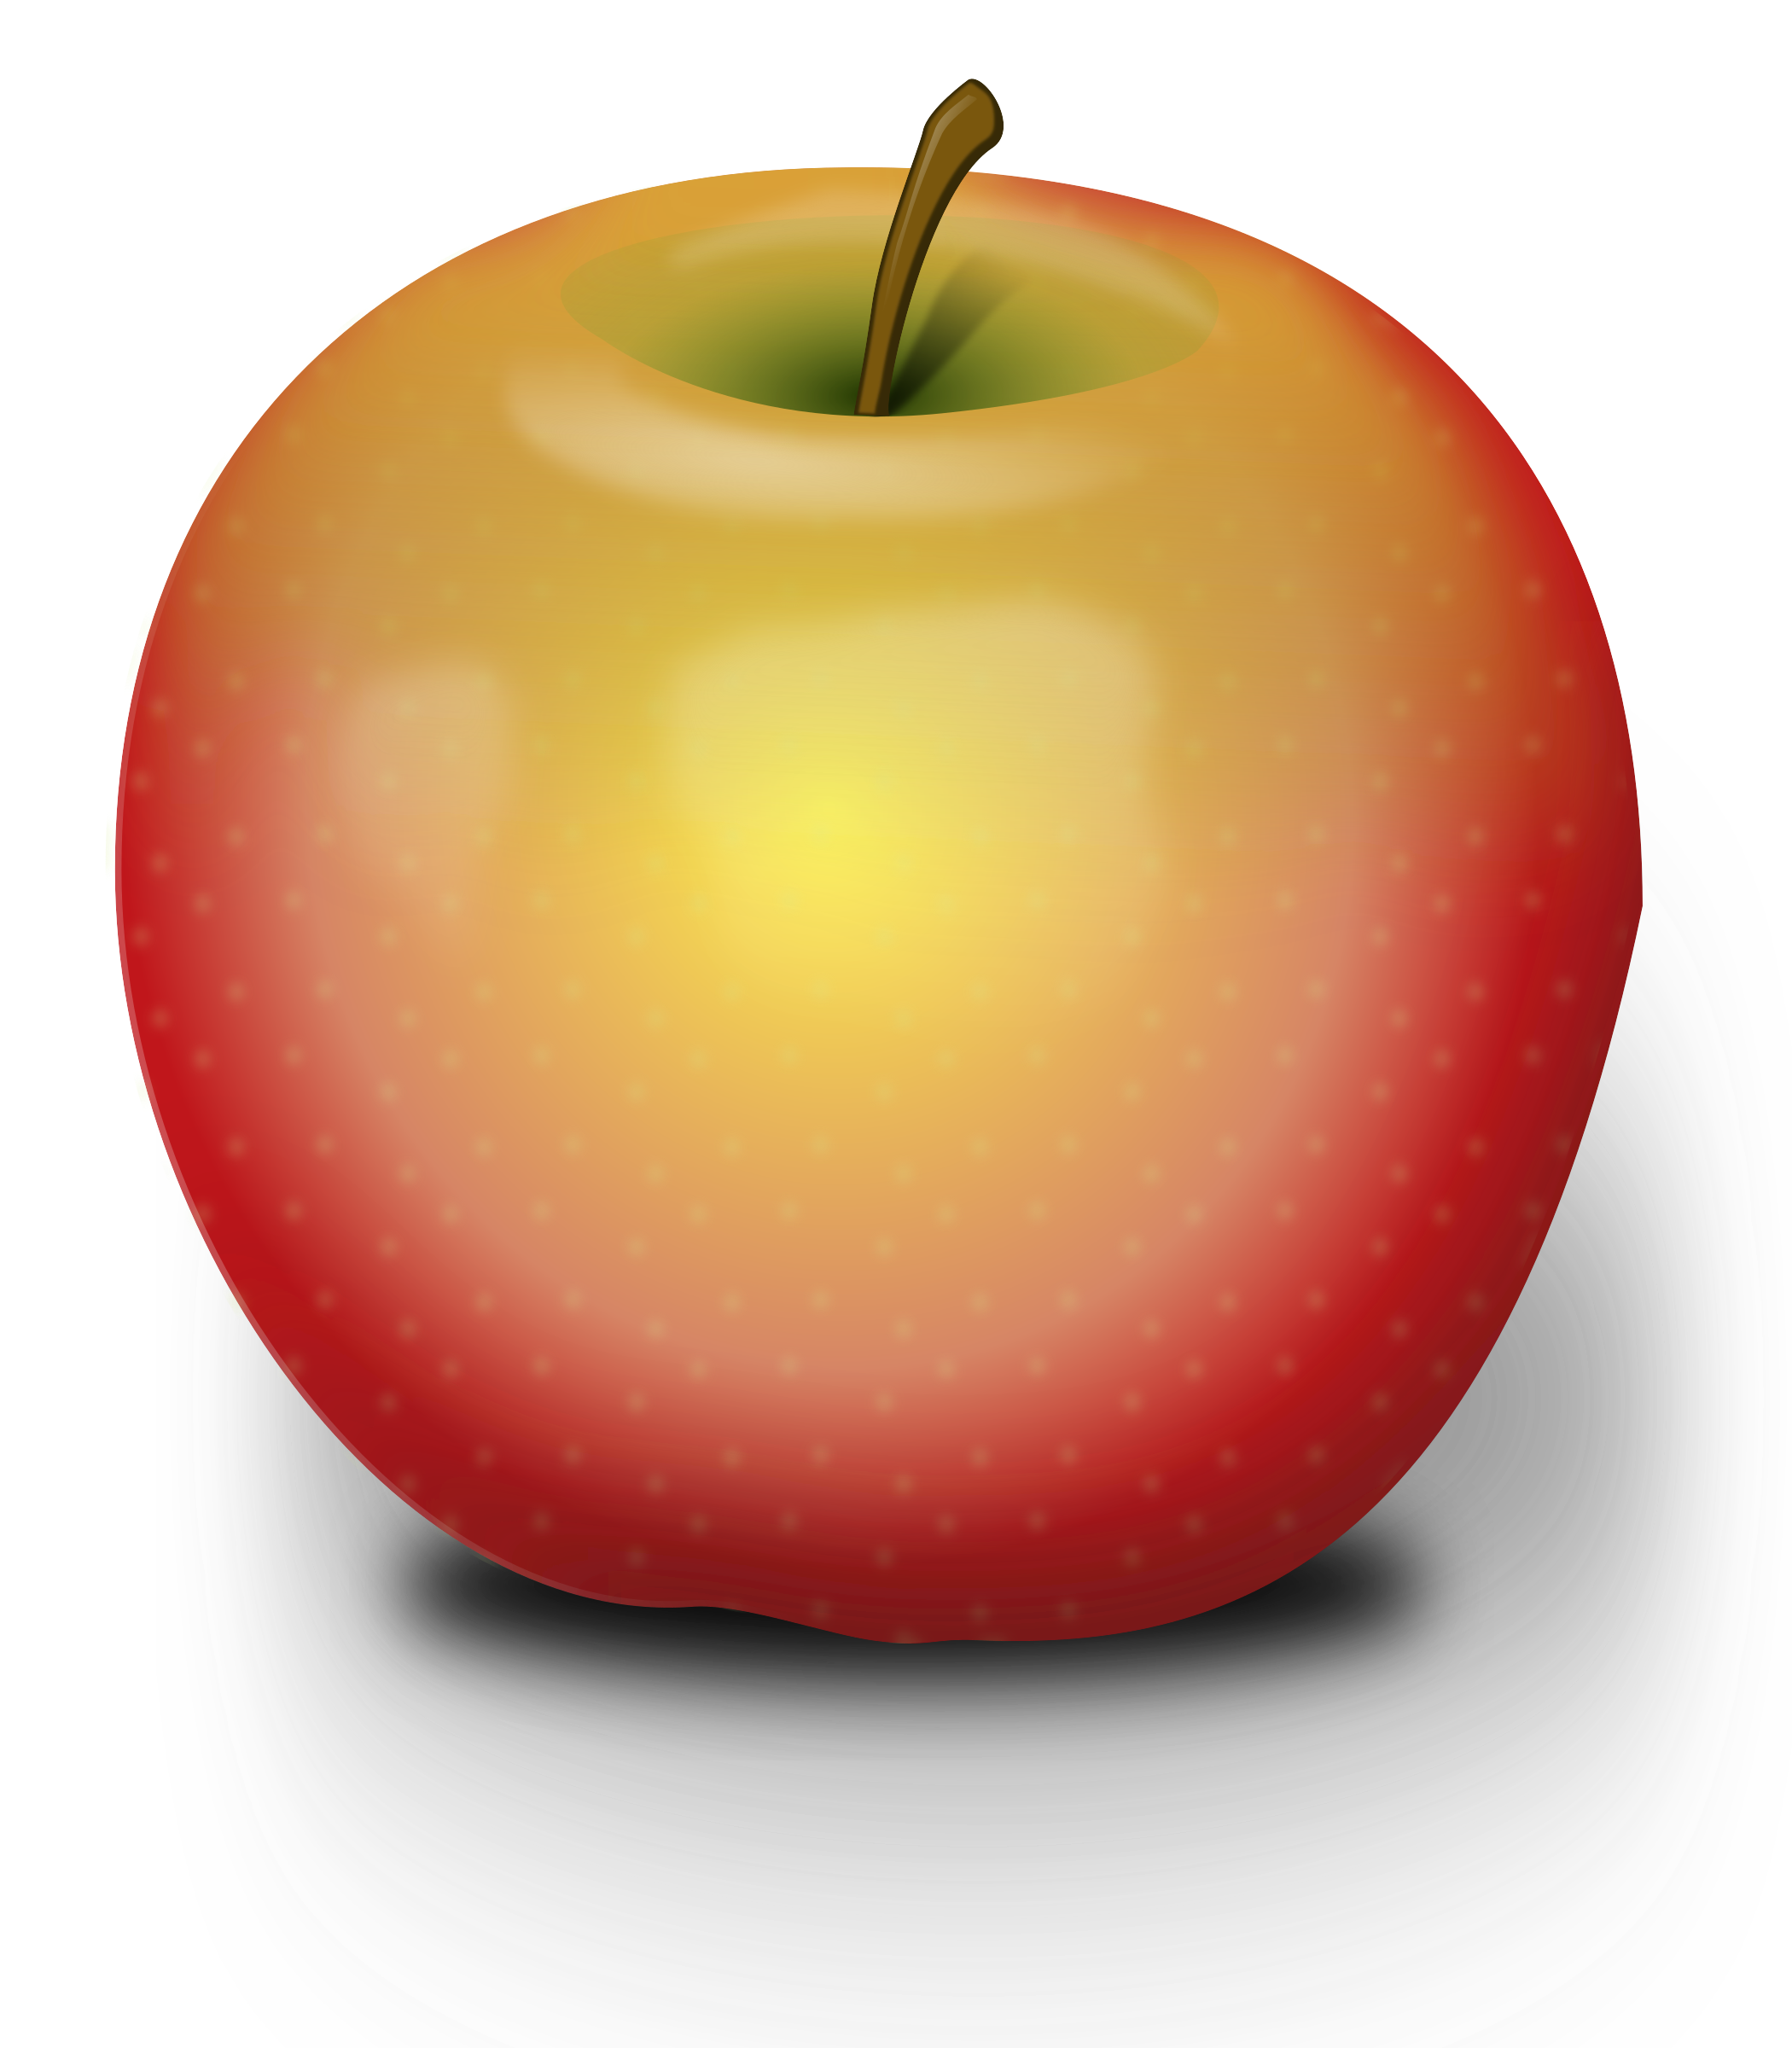 Photorealistic Red Apple by Peileppe